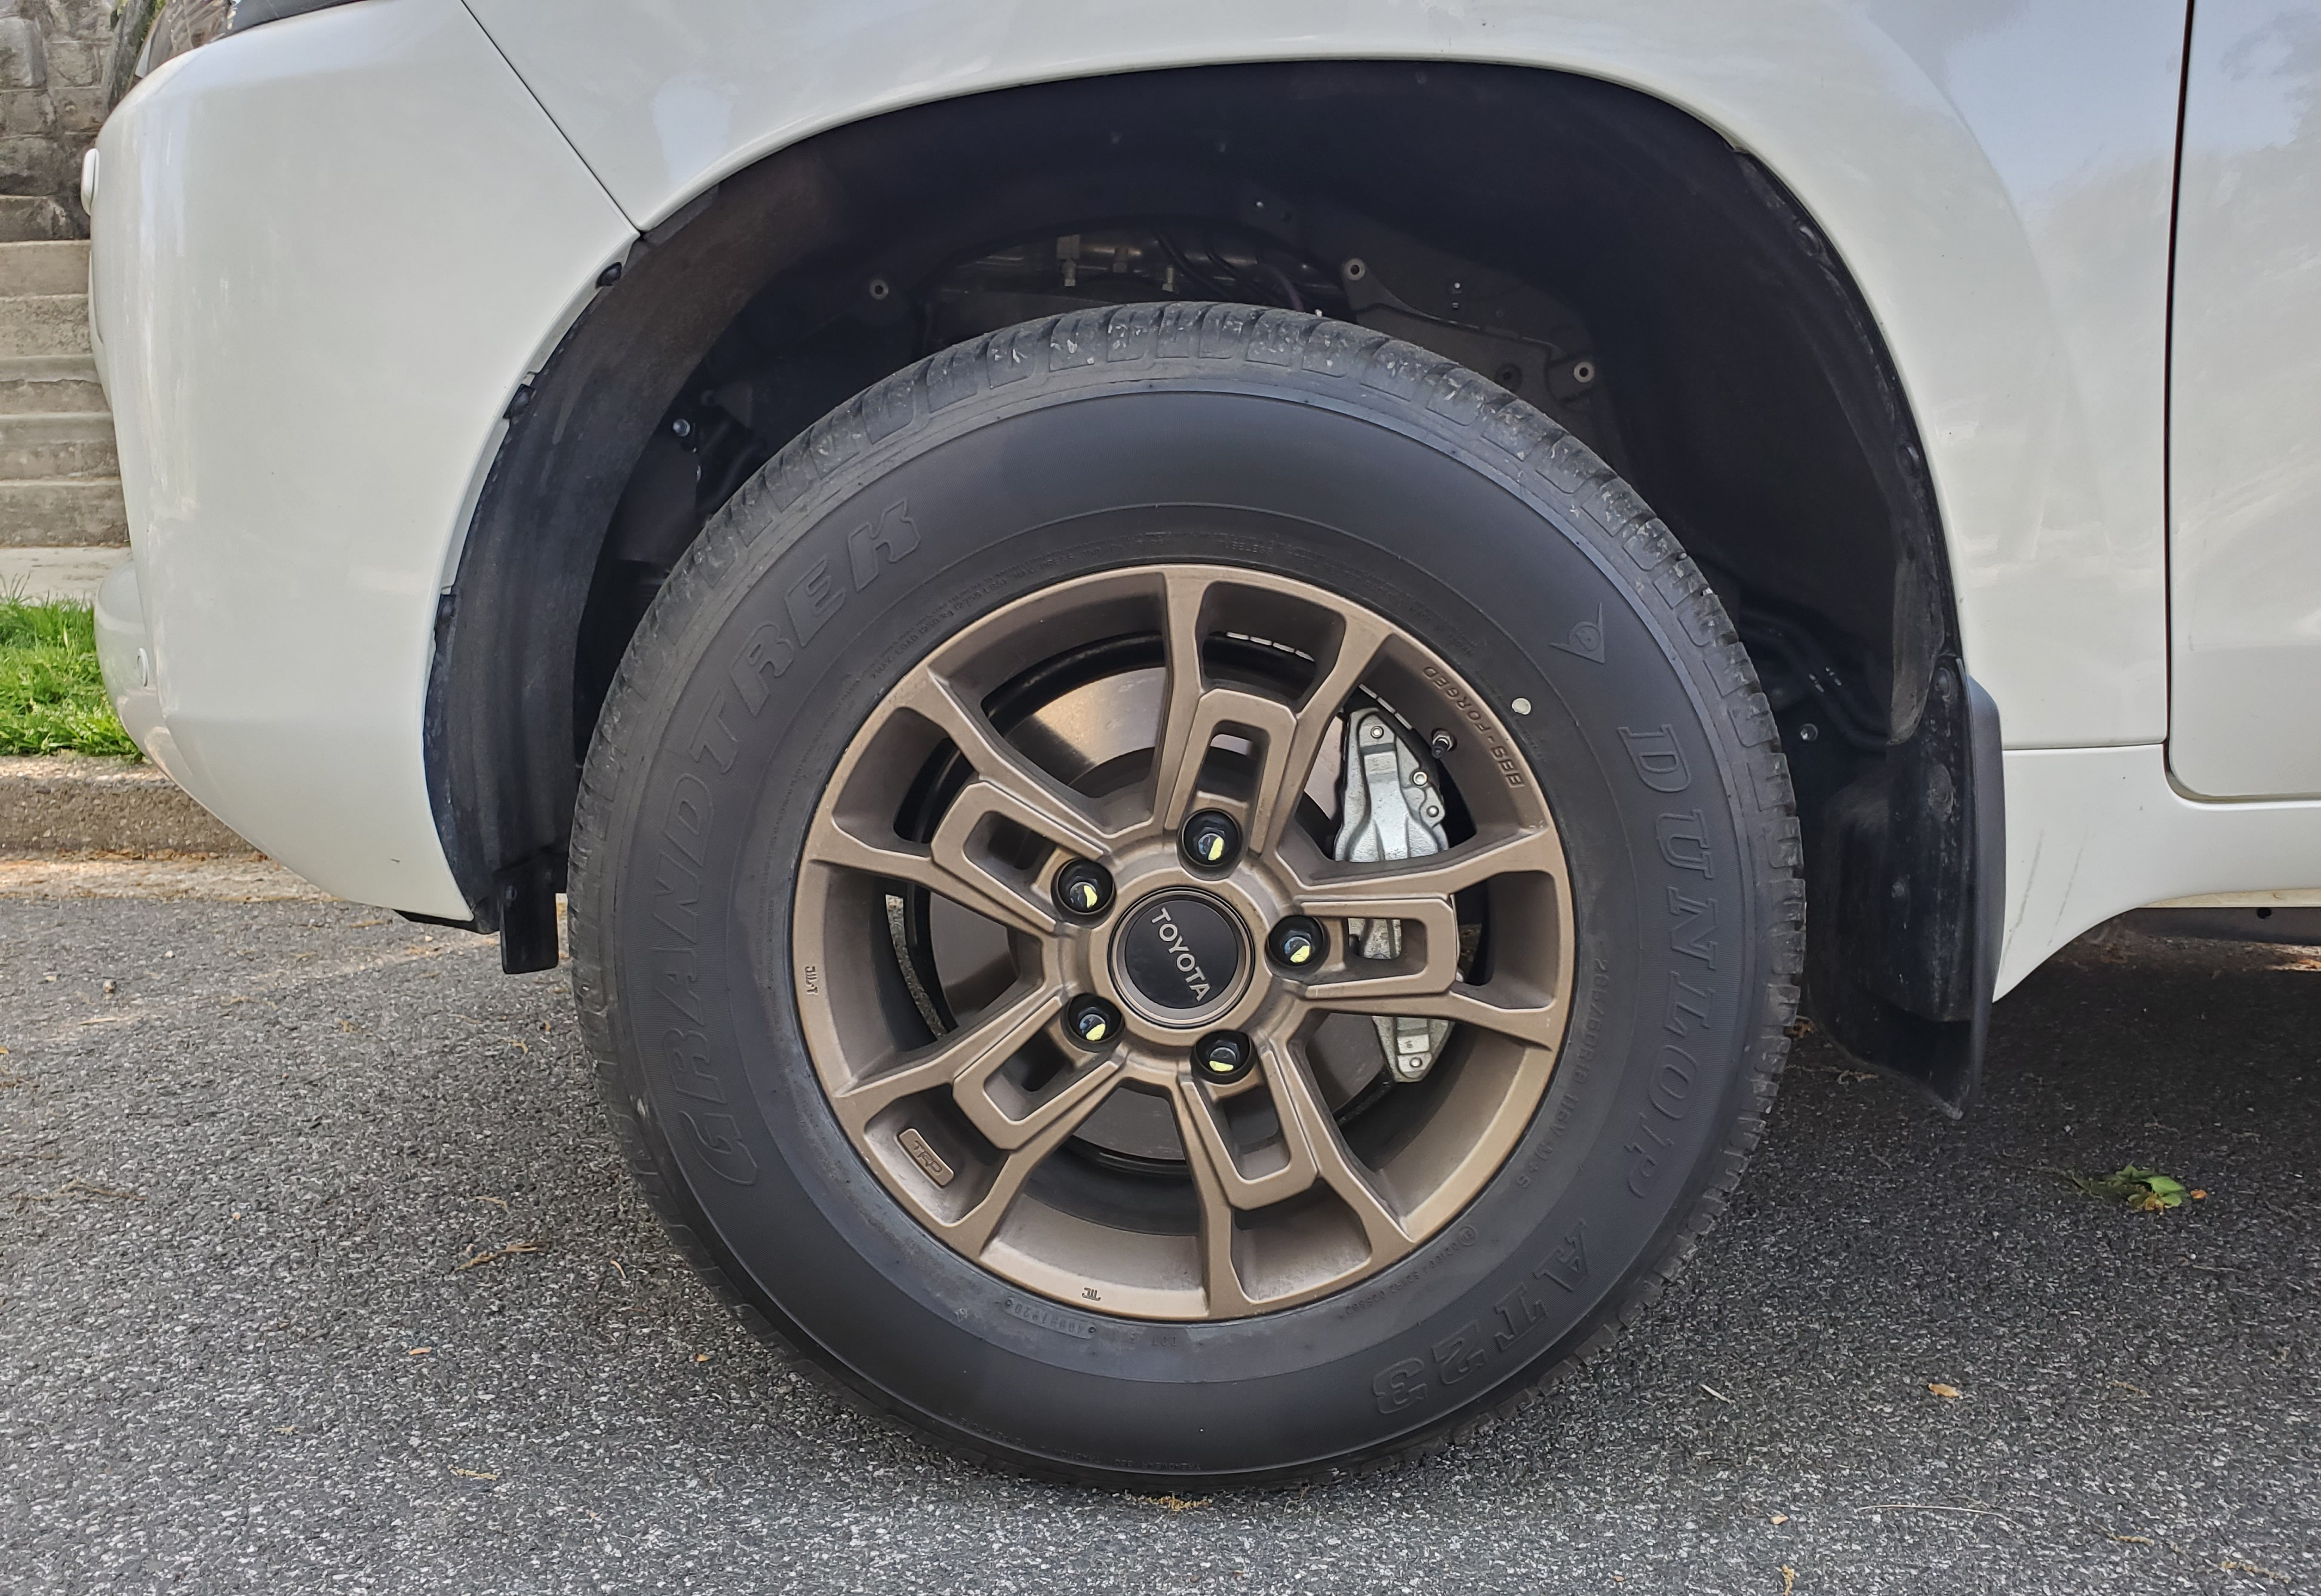 Custom BBS TRD identified 18-inch alloy wheels hold the large Dunlop Tires